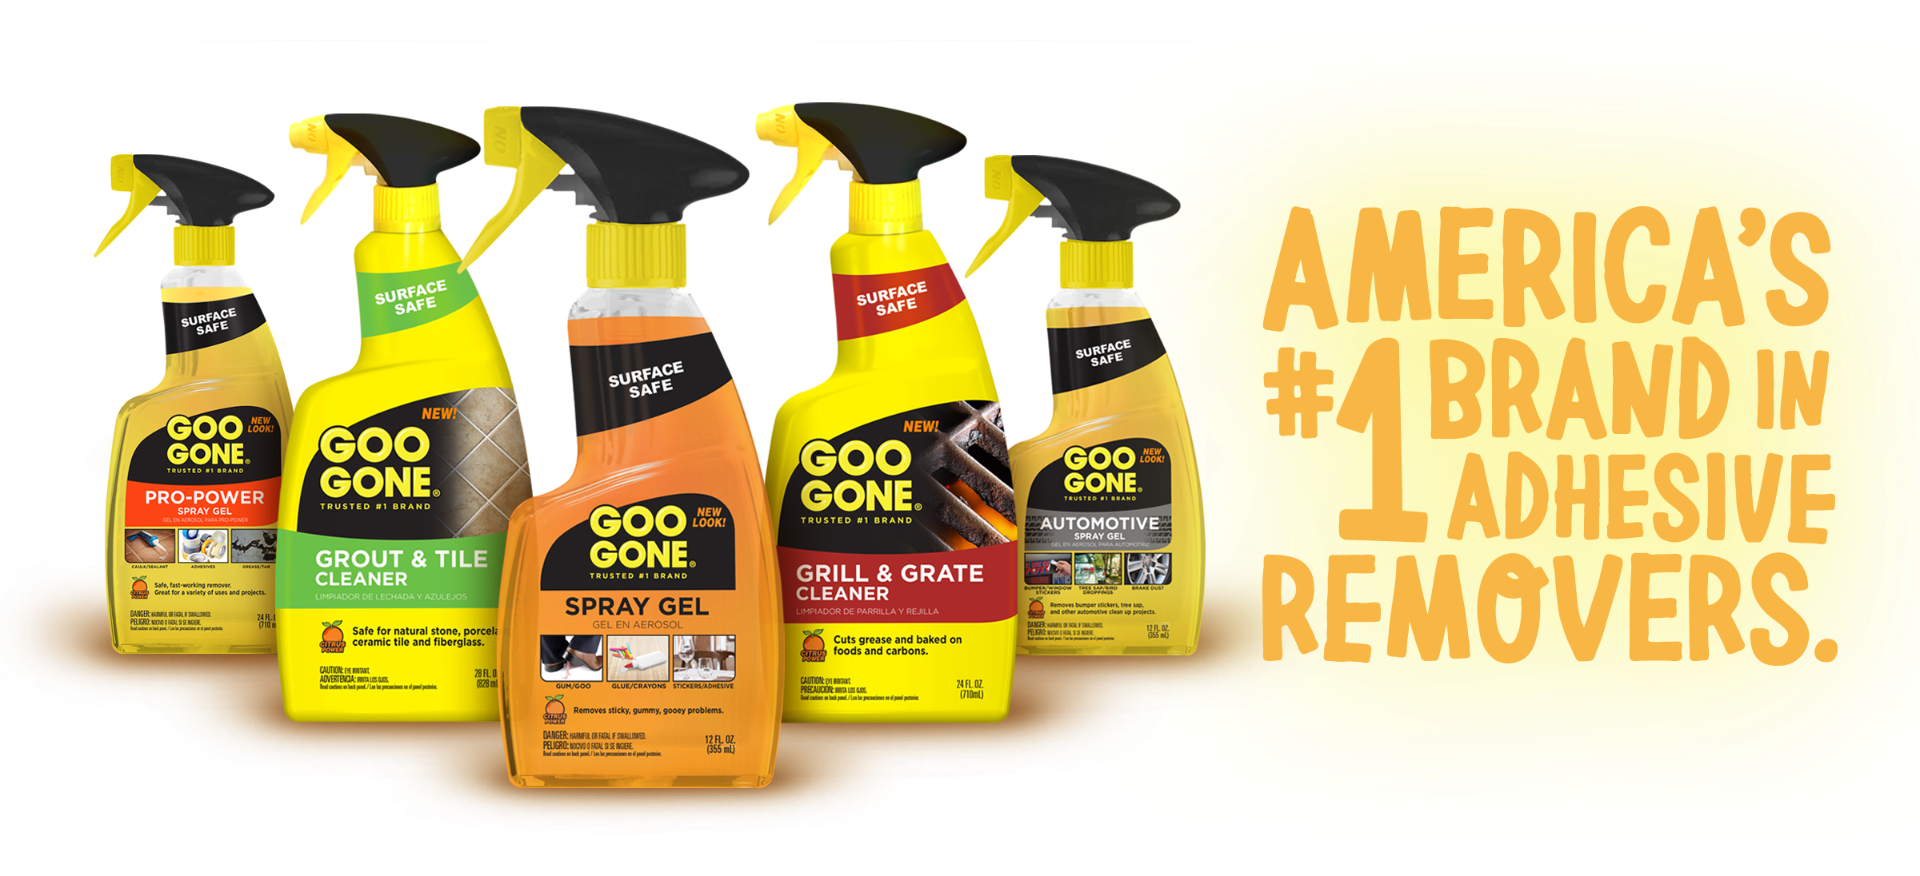 America's Number One Brand in Adhesive Removers